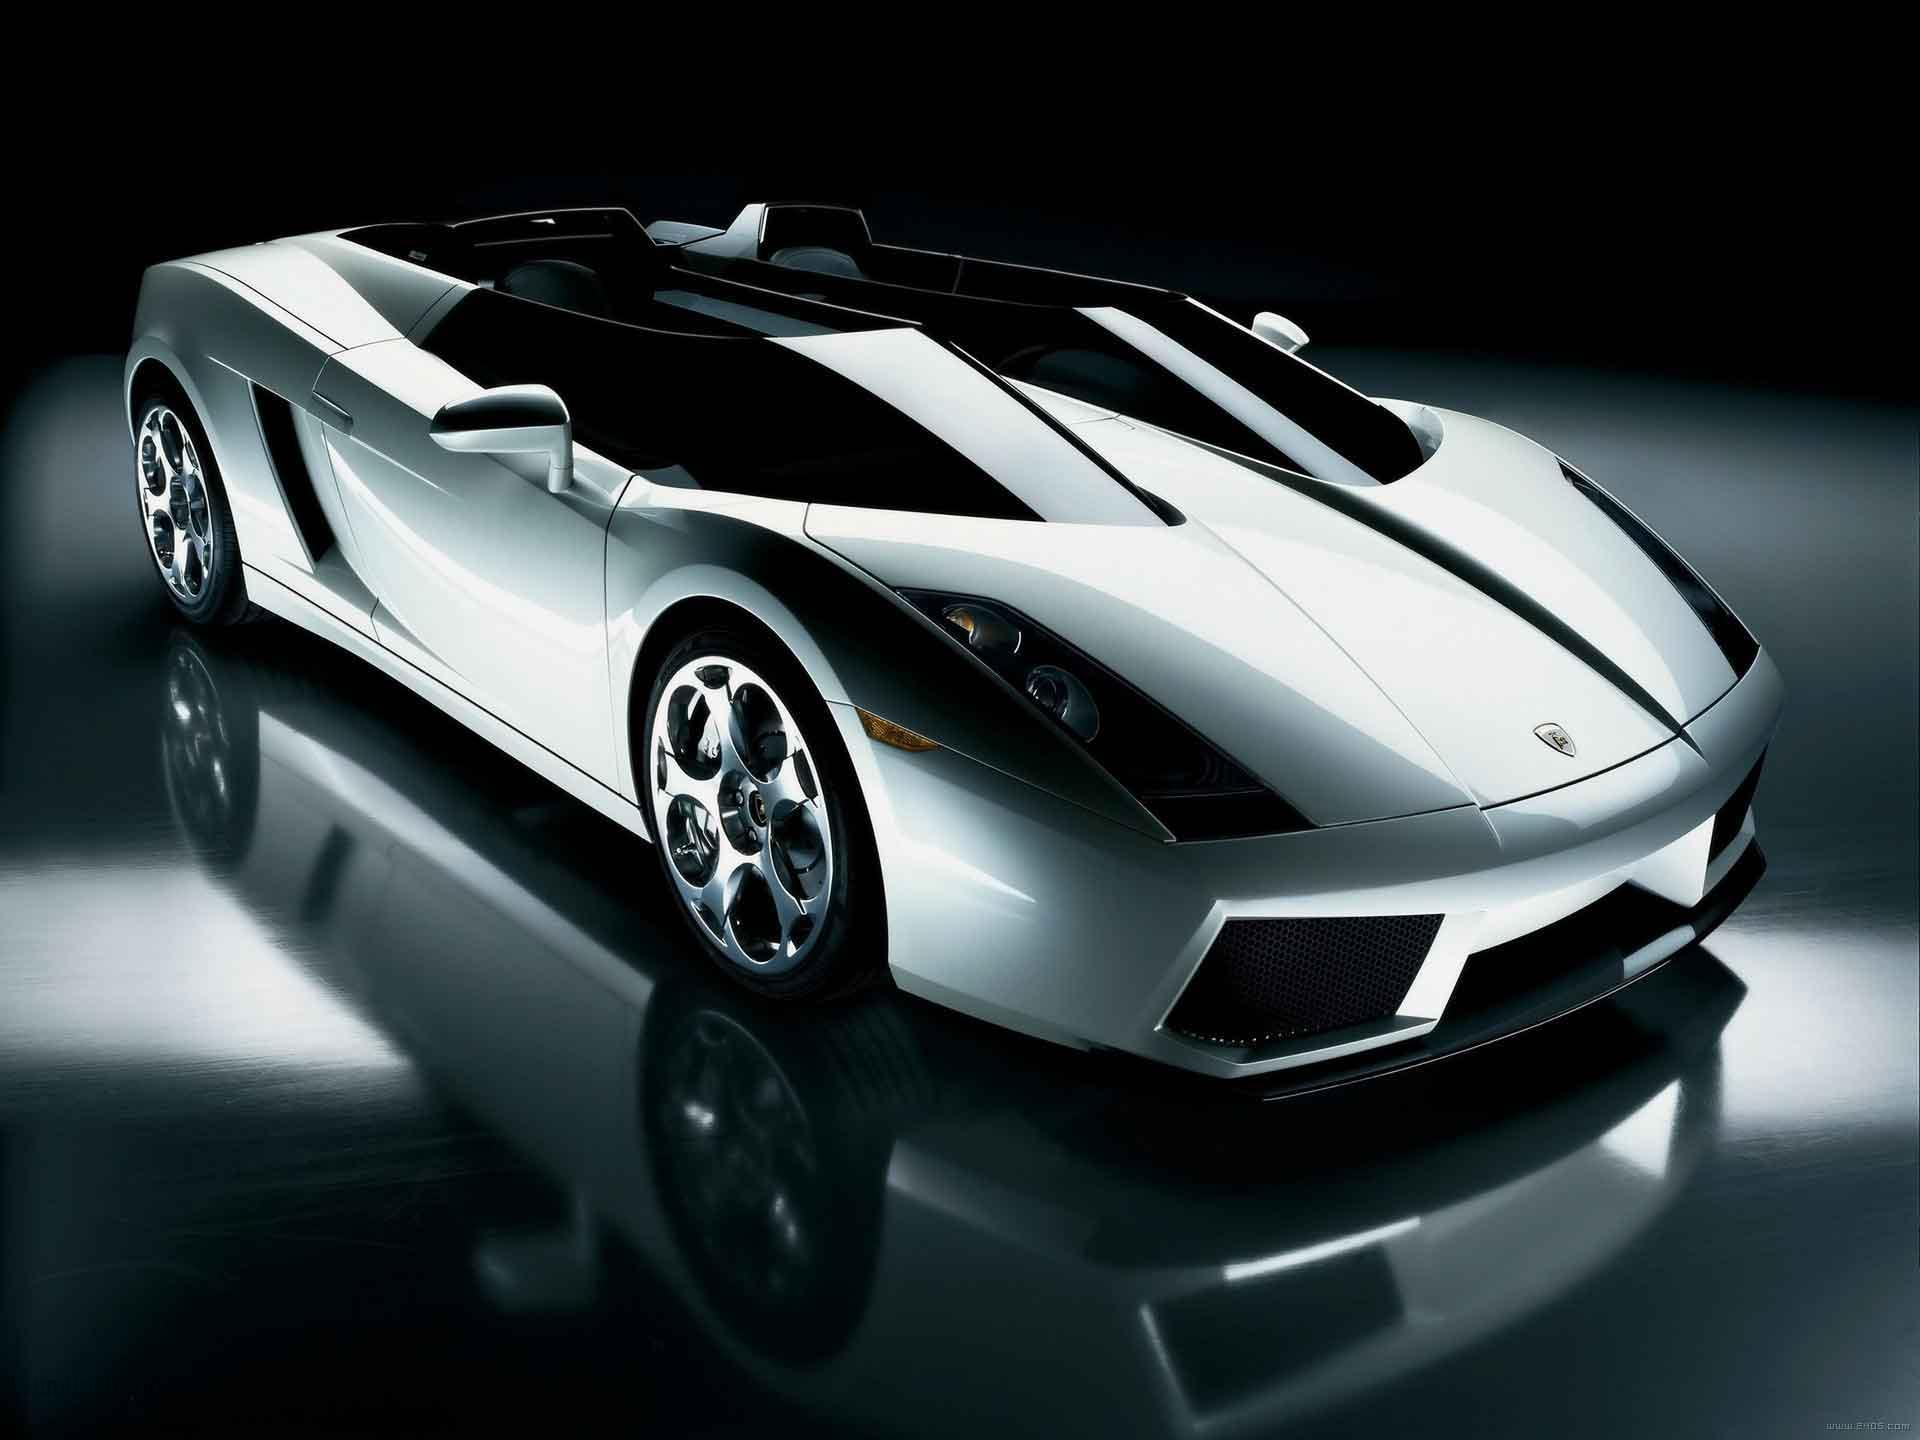 Images For > Super Cars Wallpapers Hd